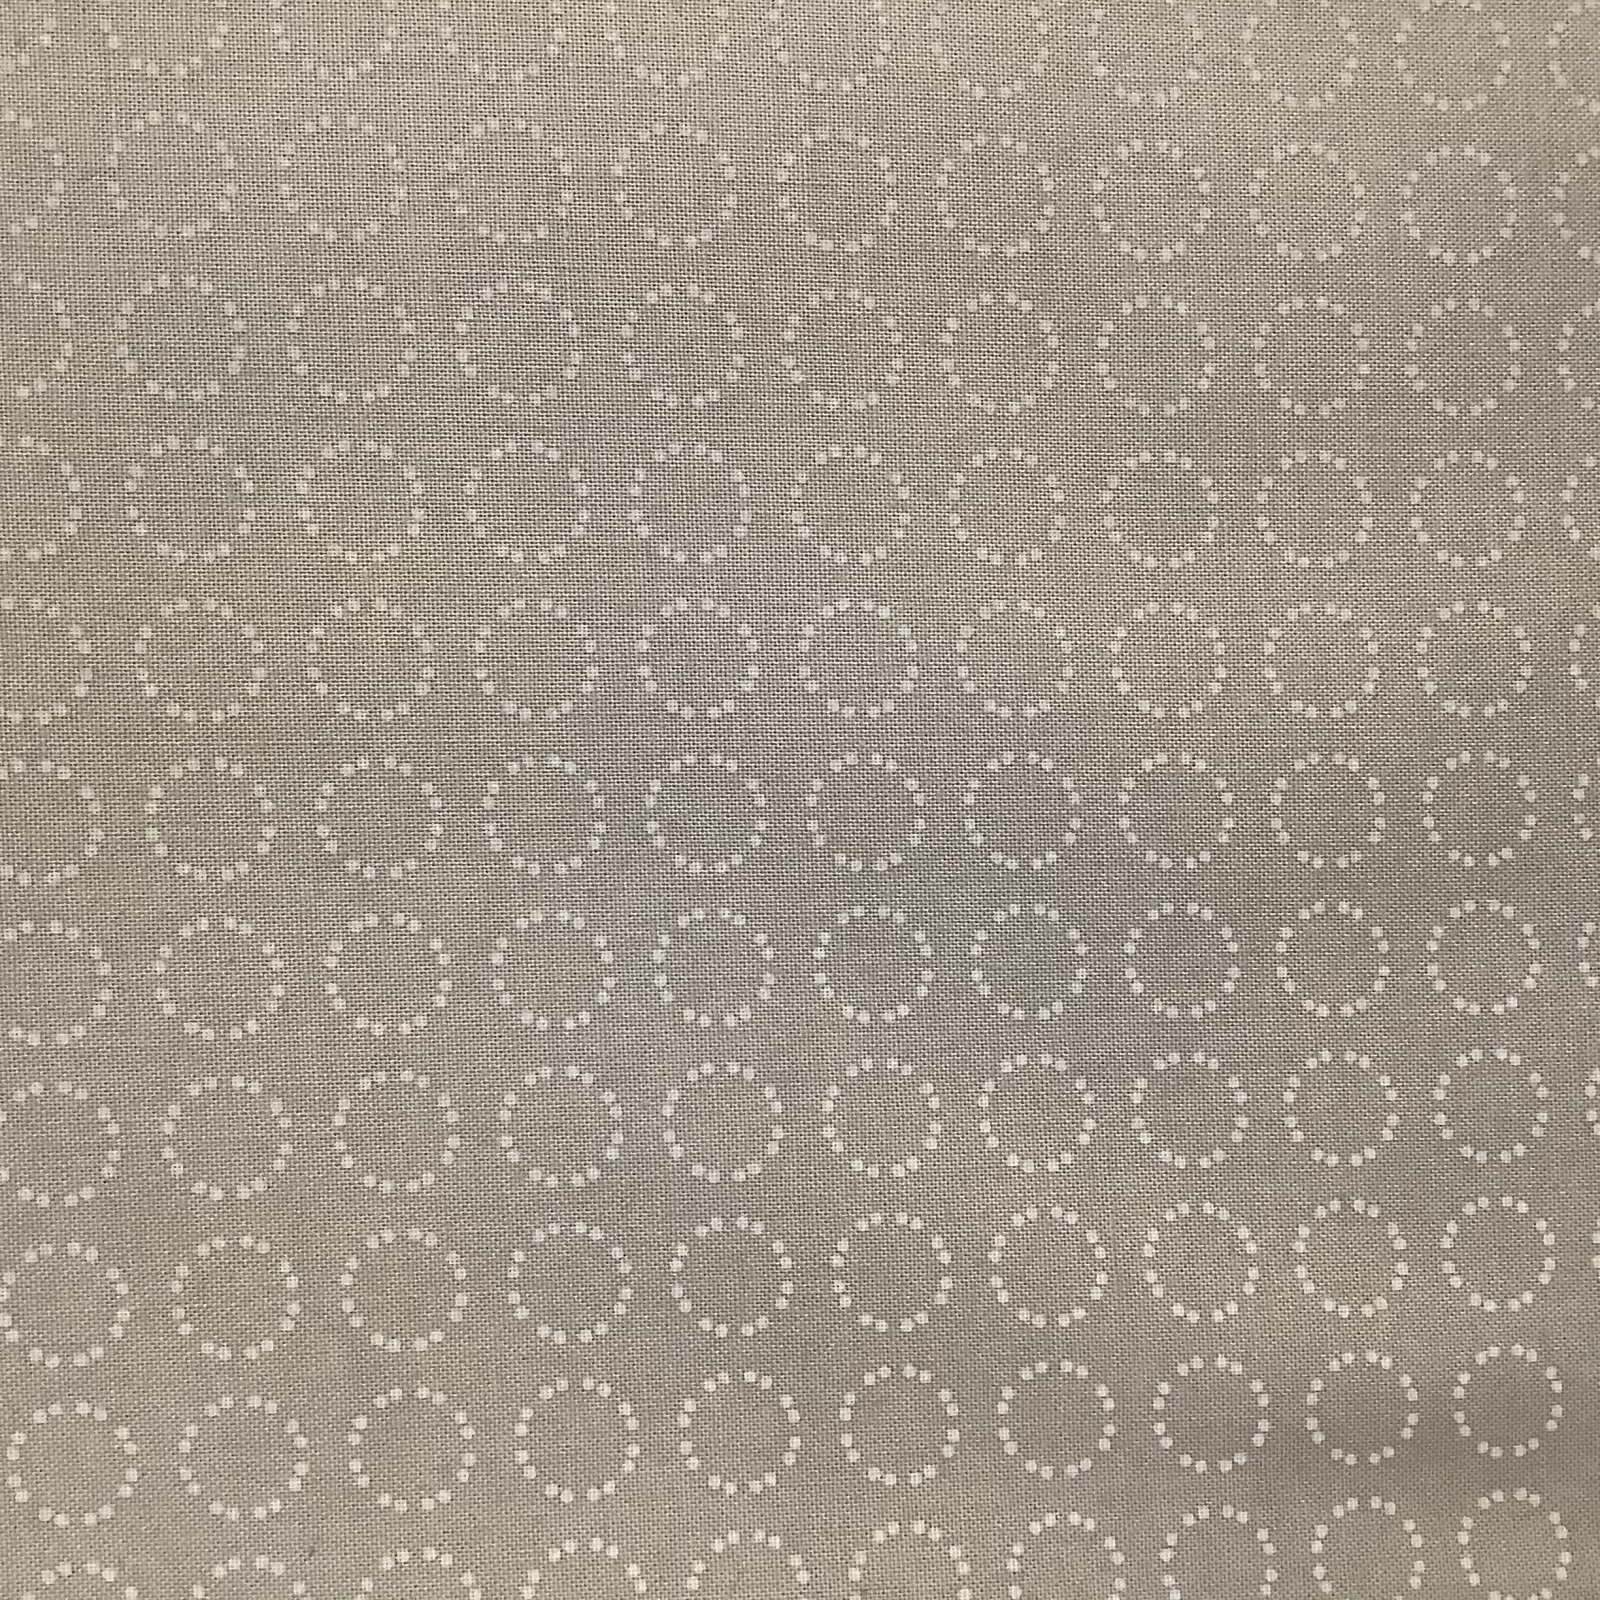 SILVER LININGS-DOTTED CIRCLES-GRY